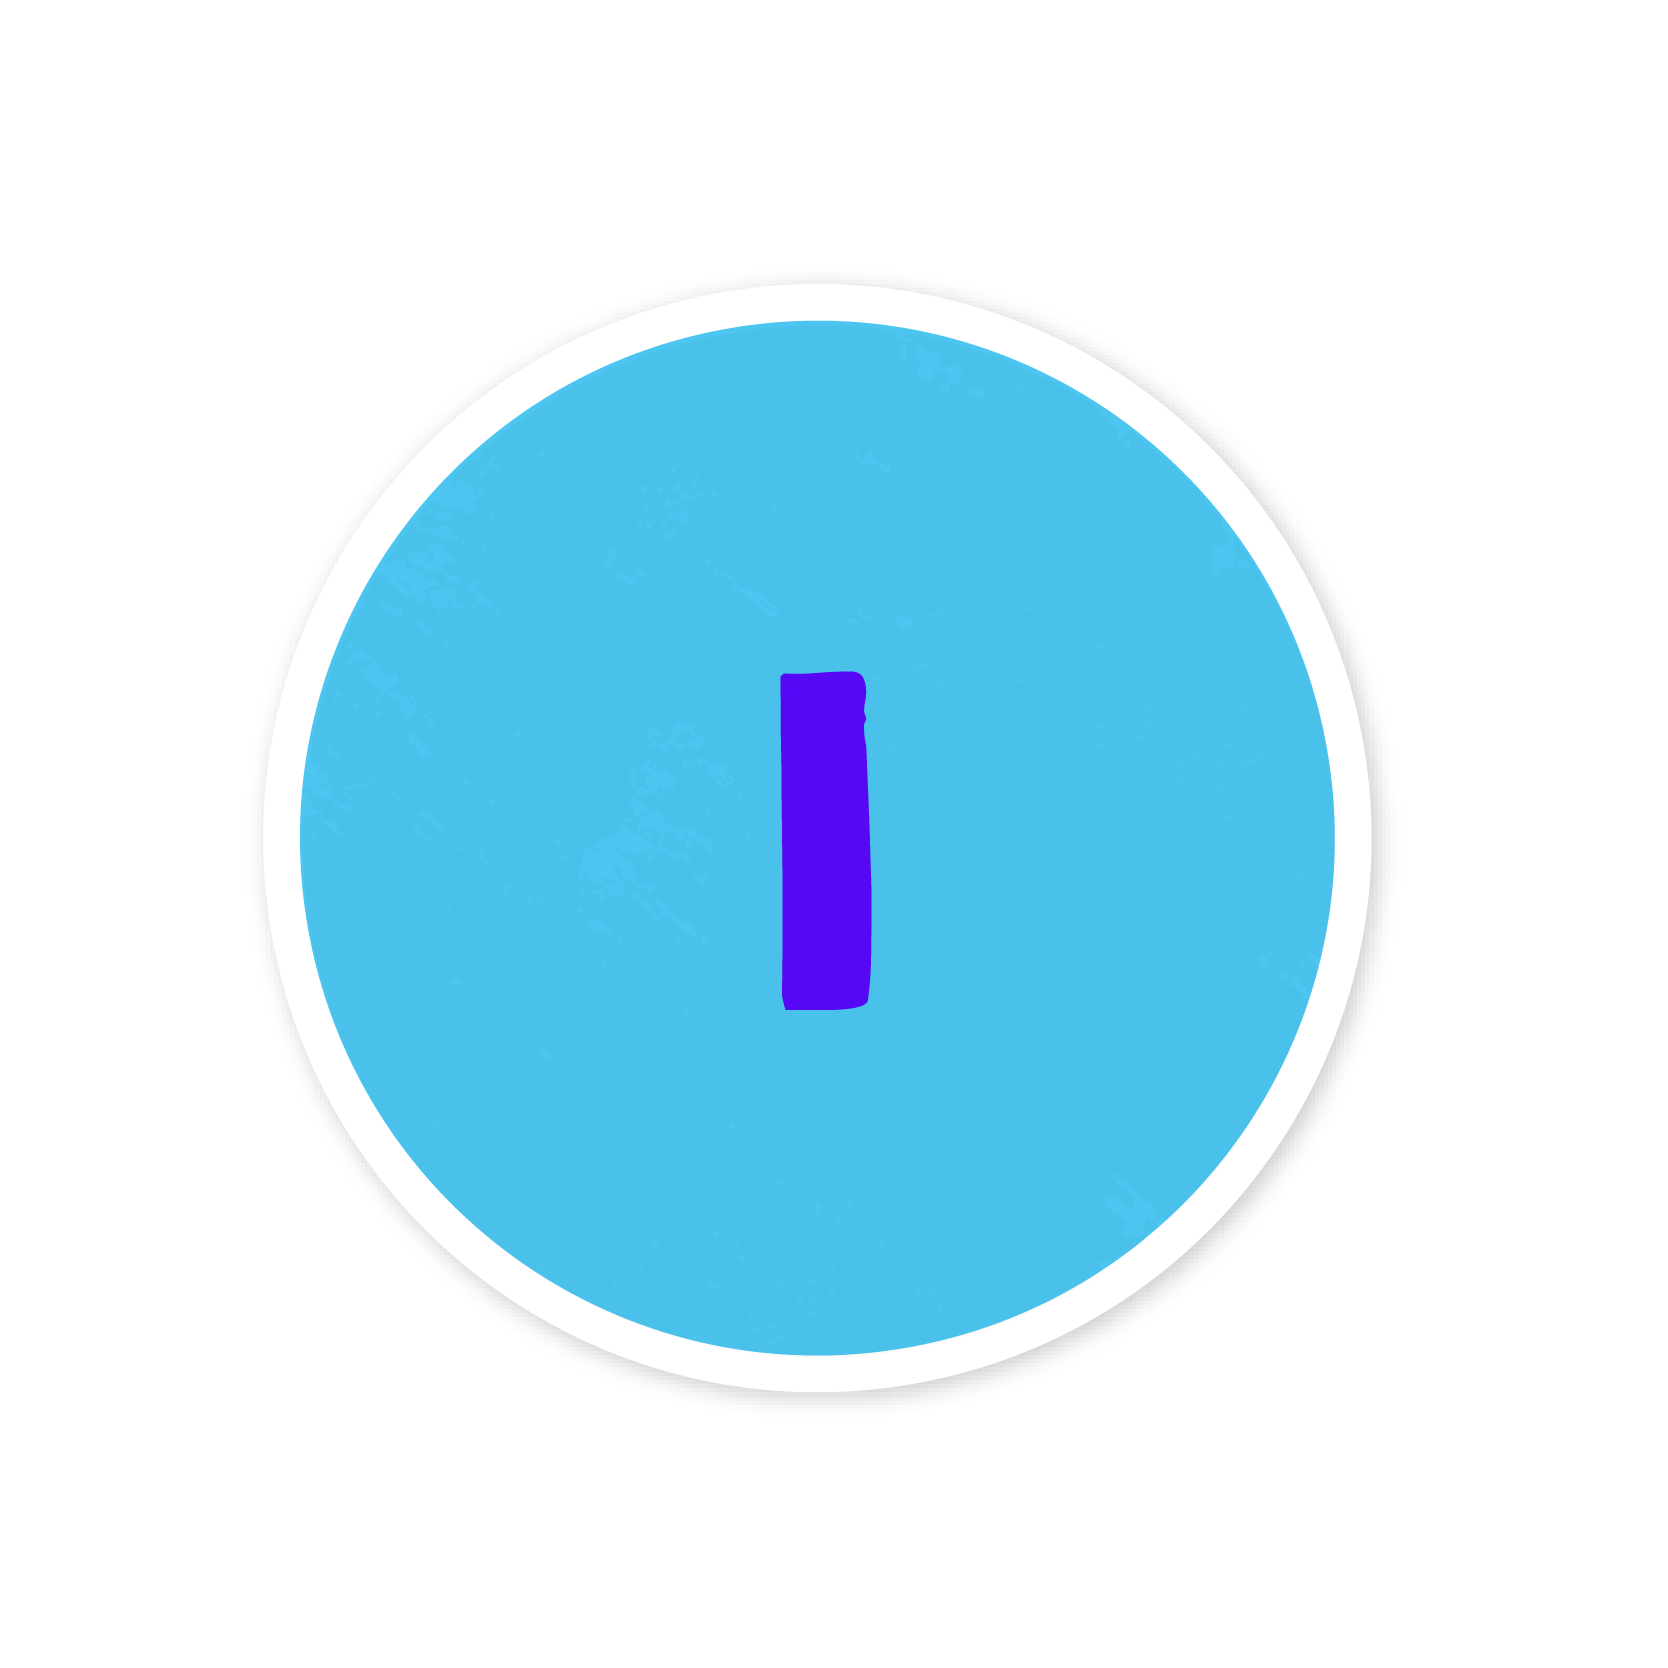 A blue number one sticker